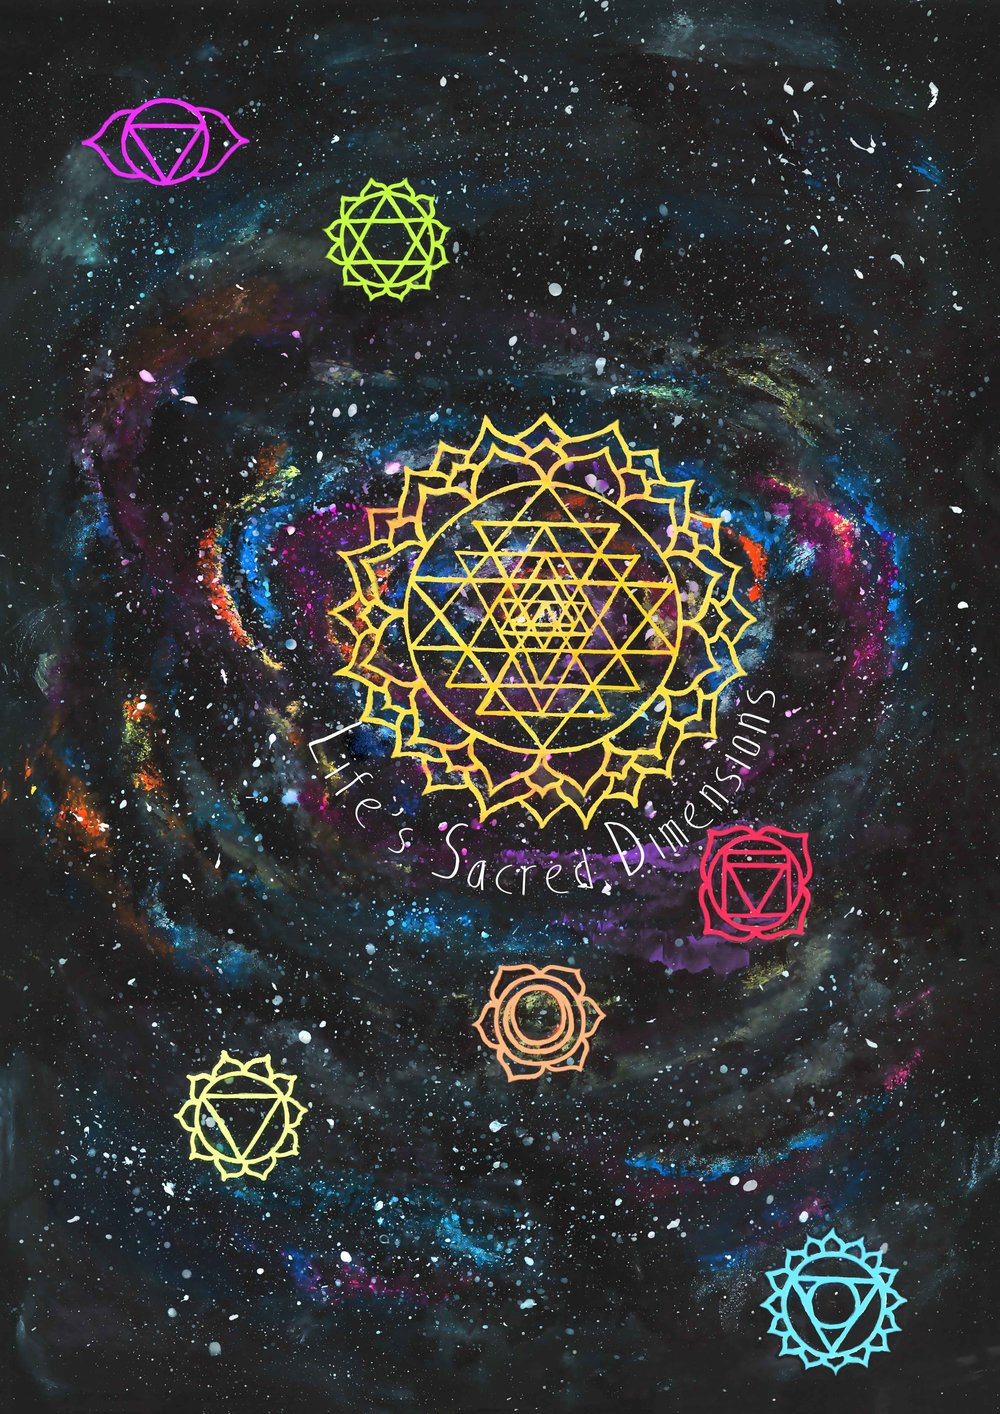 Life's Sacred Dimensions Poster  €9.99–€14.99 Available in A4, A3